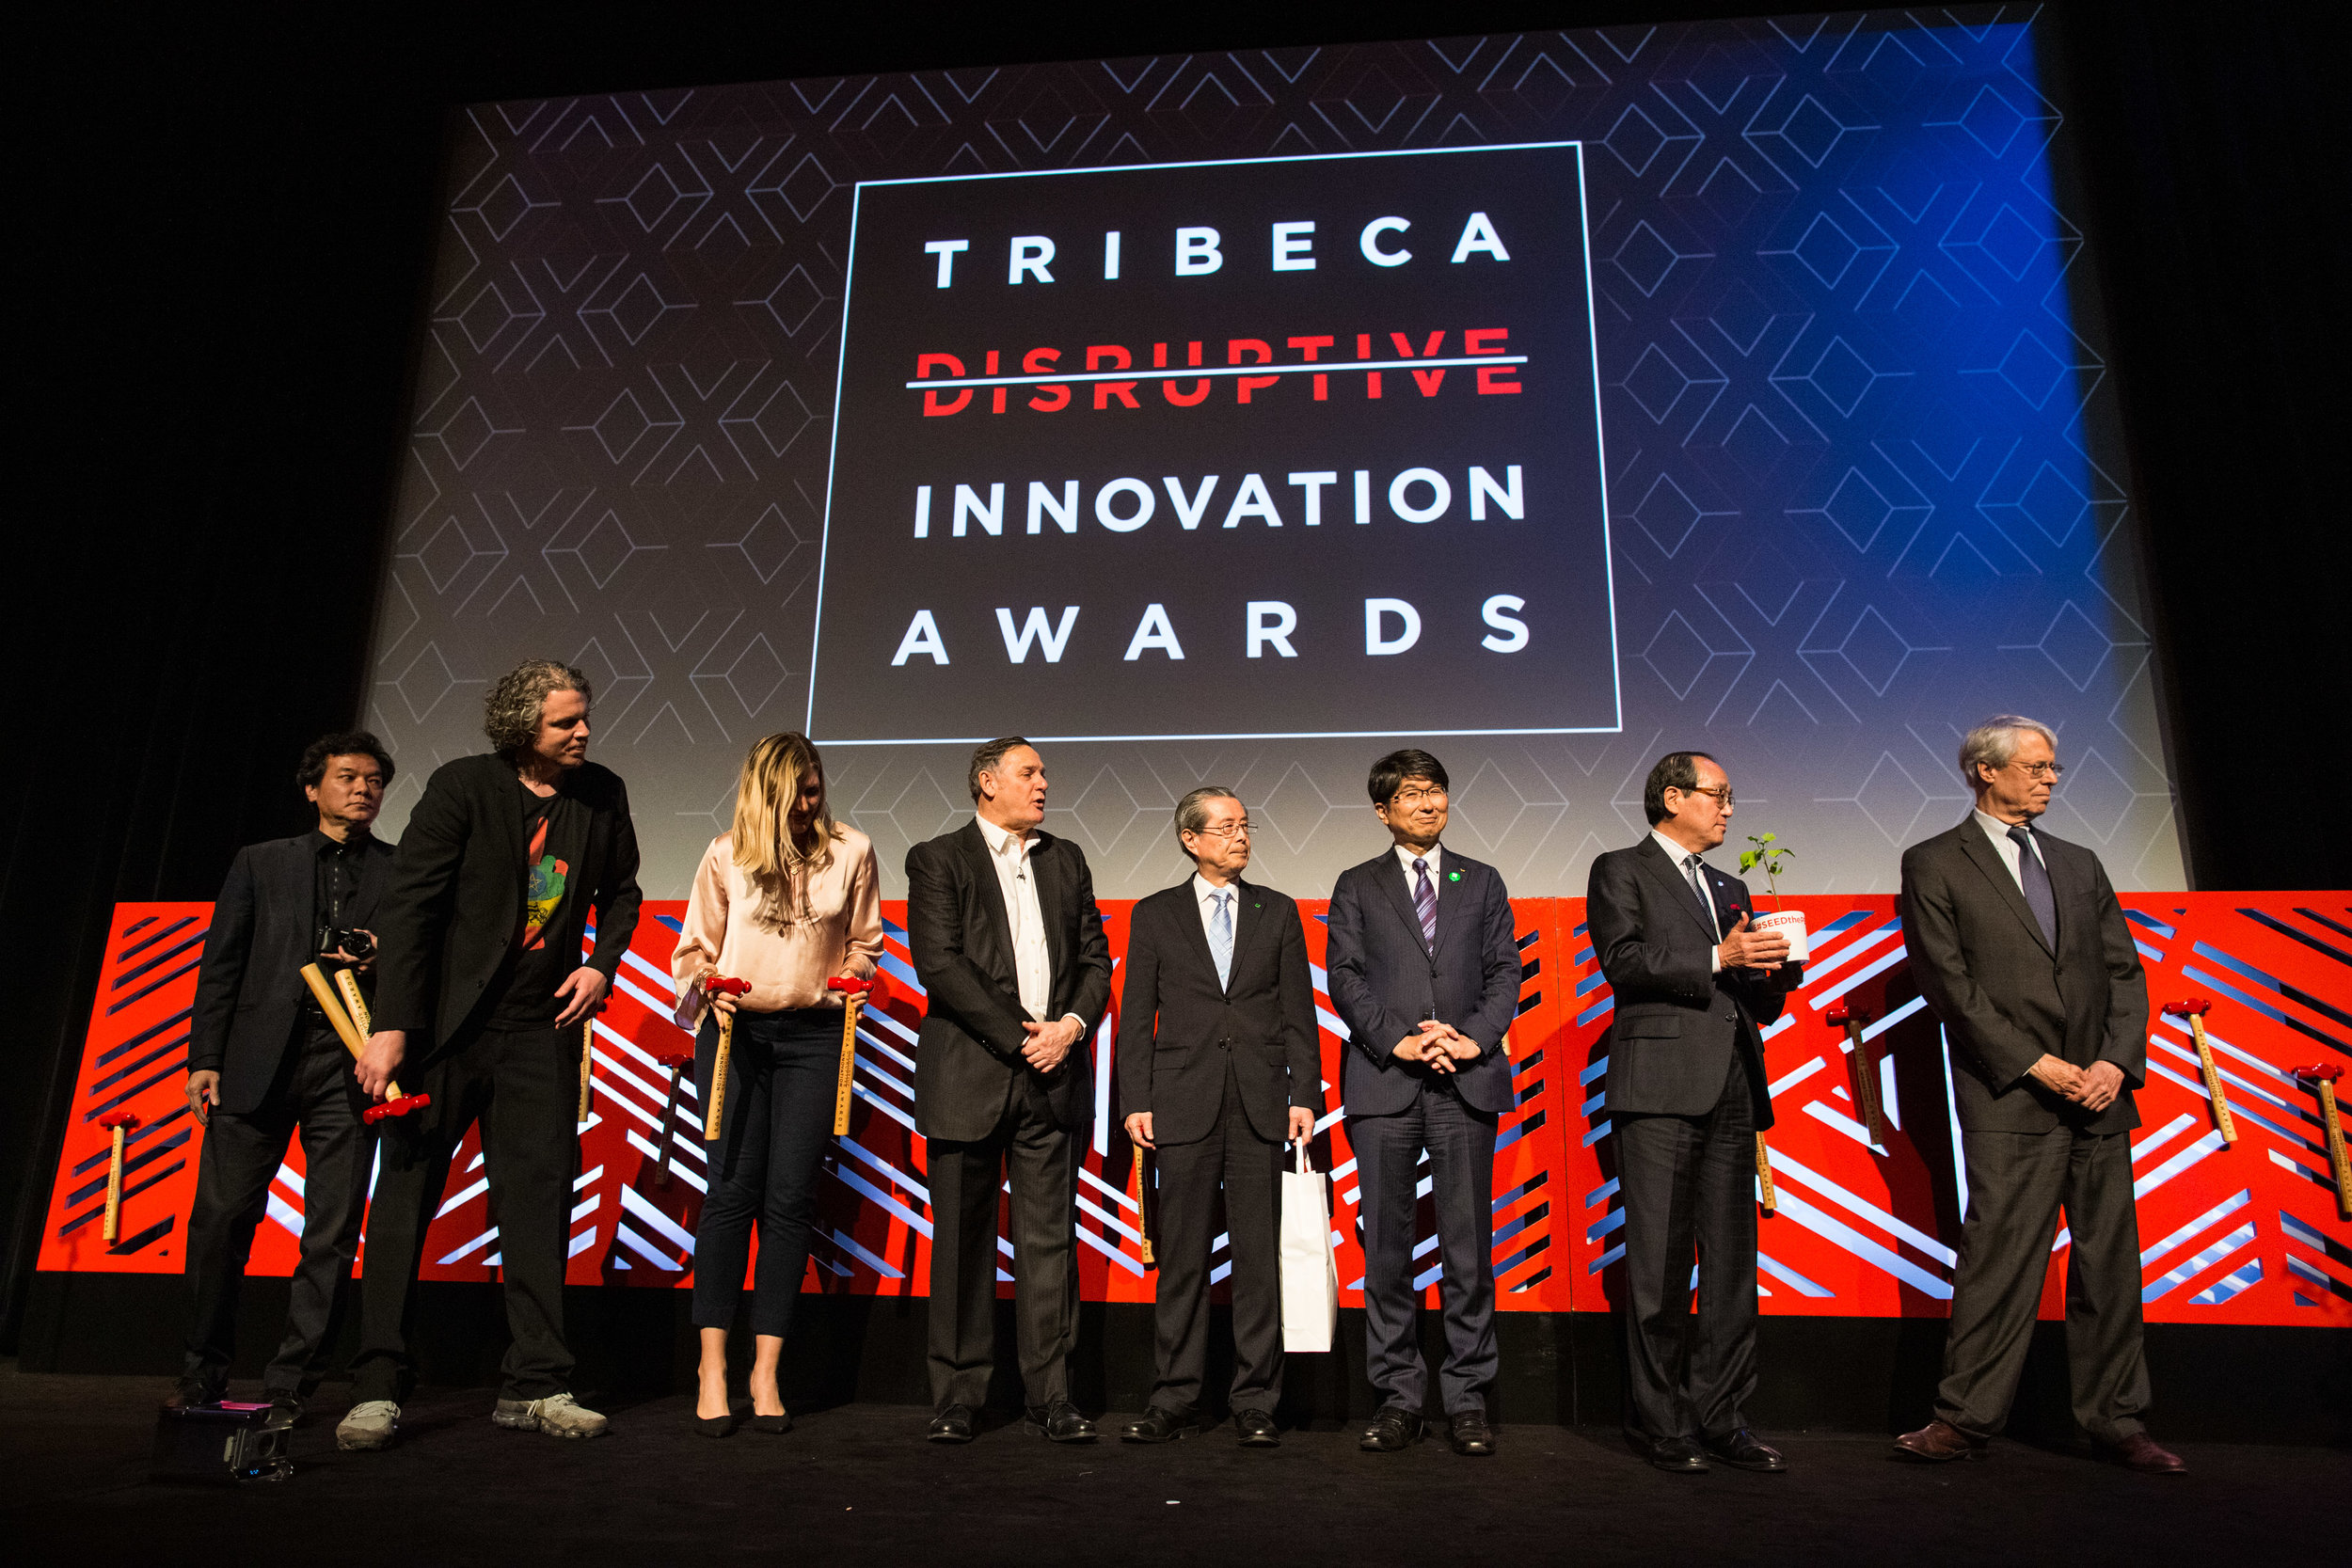 20190503-Tribeca Disruptive Innovation Awards-0438.jpg